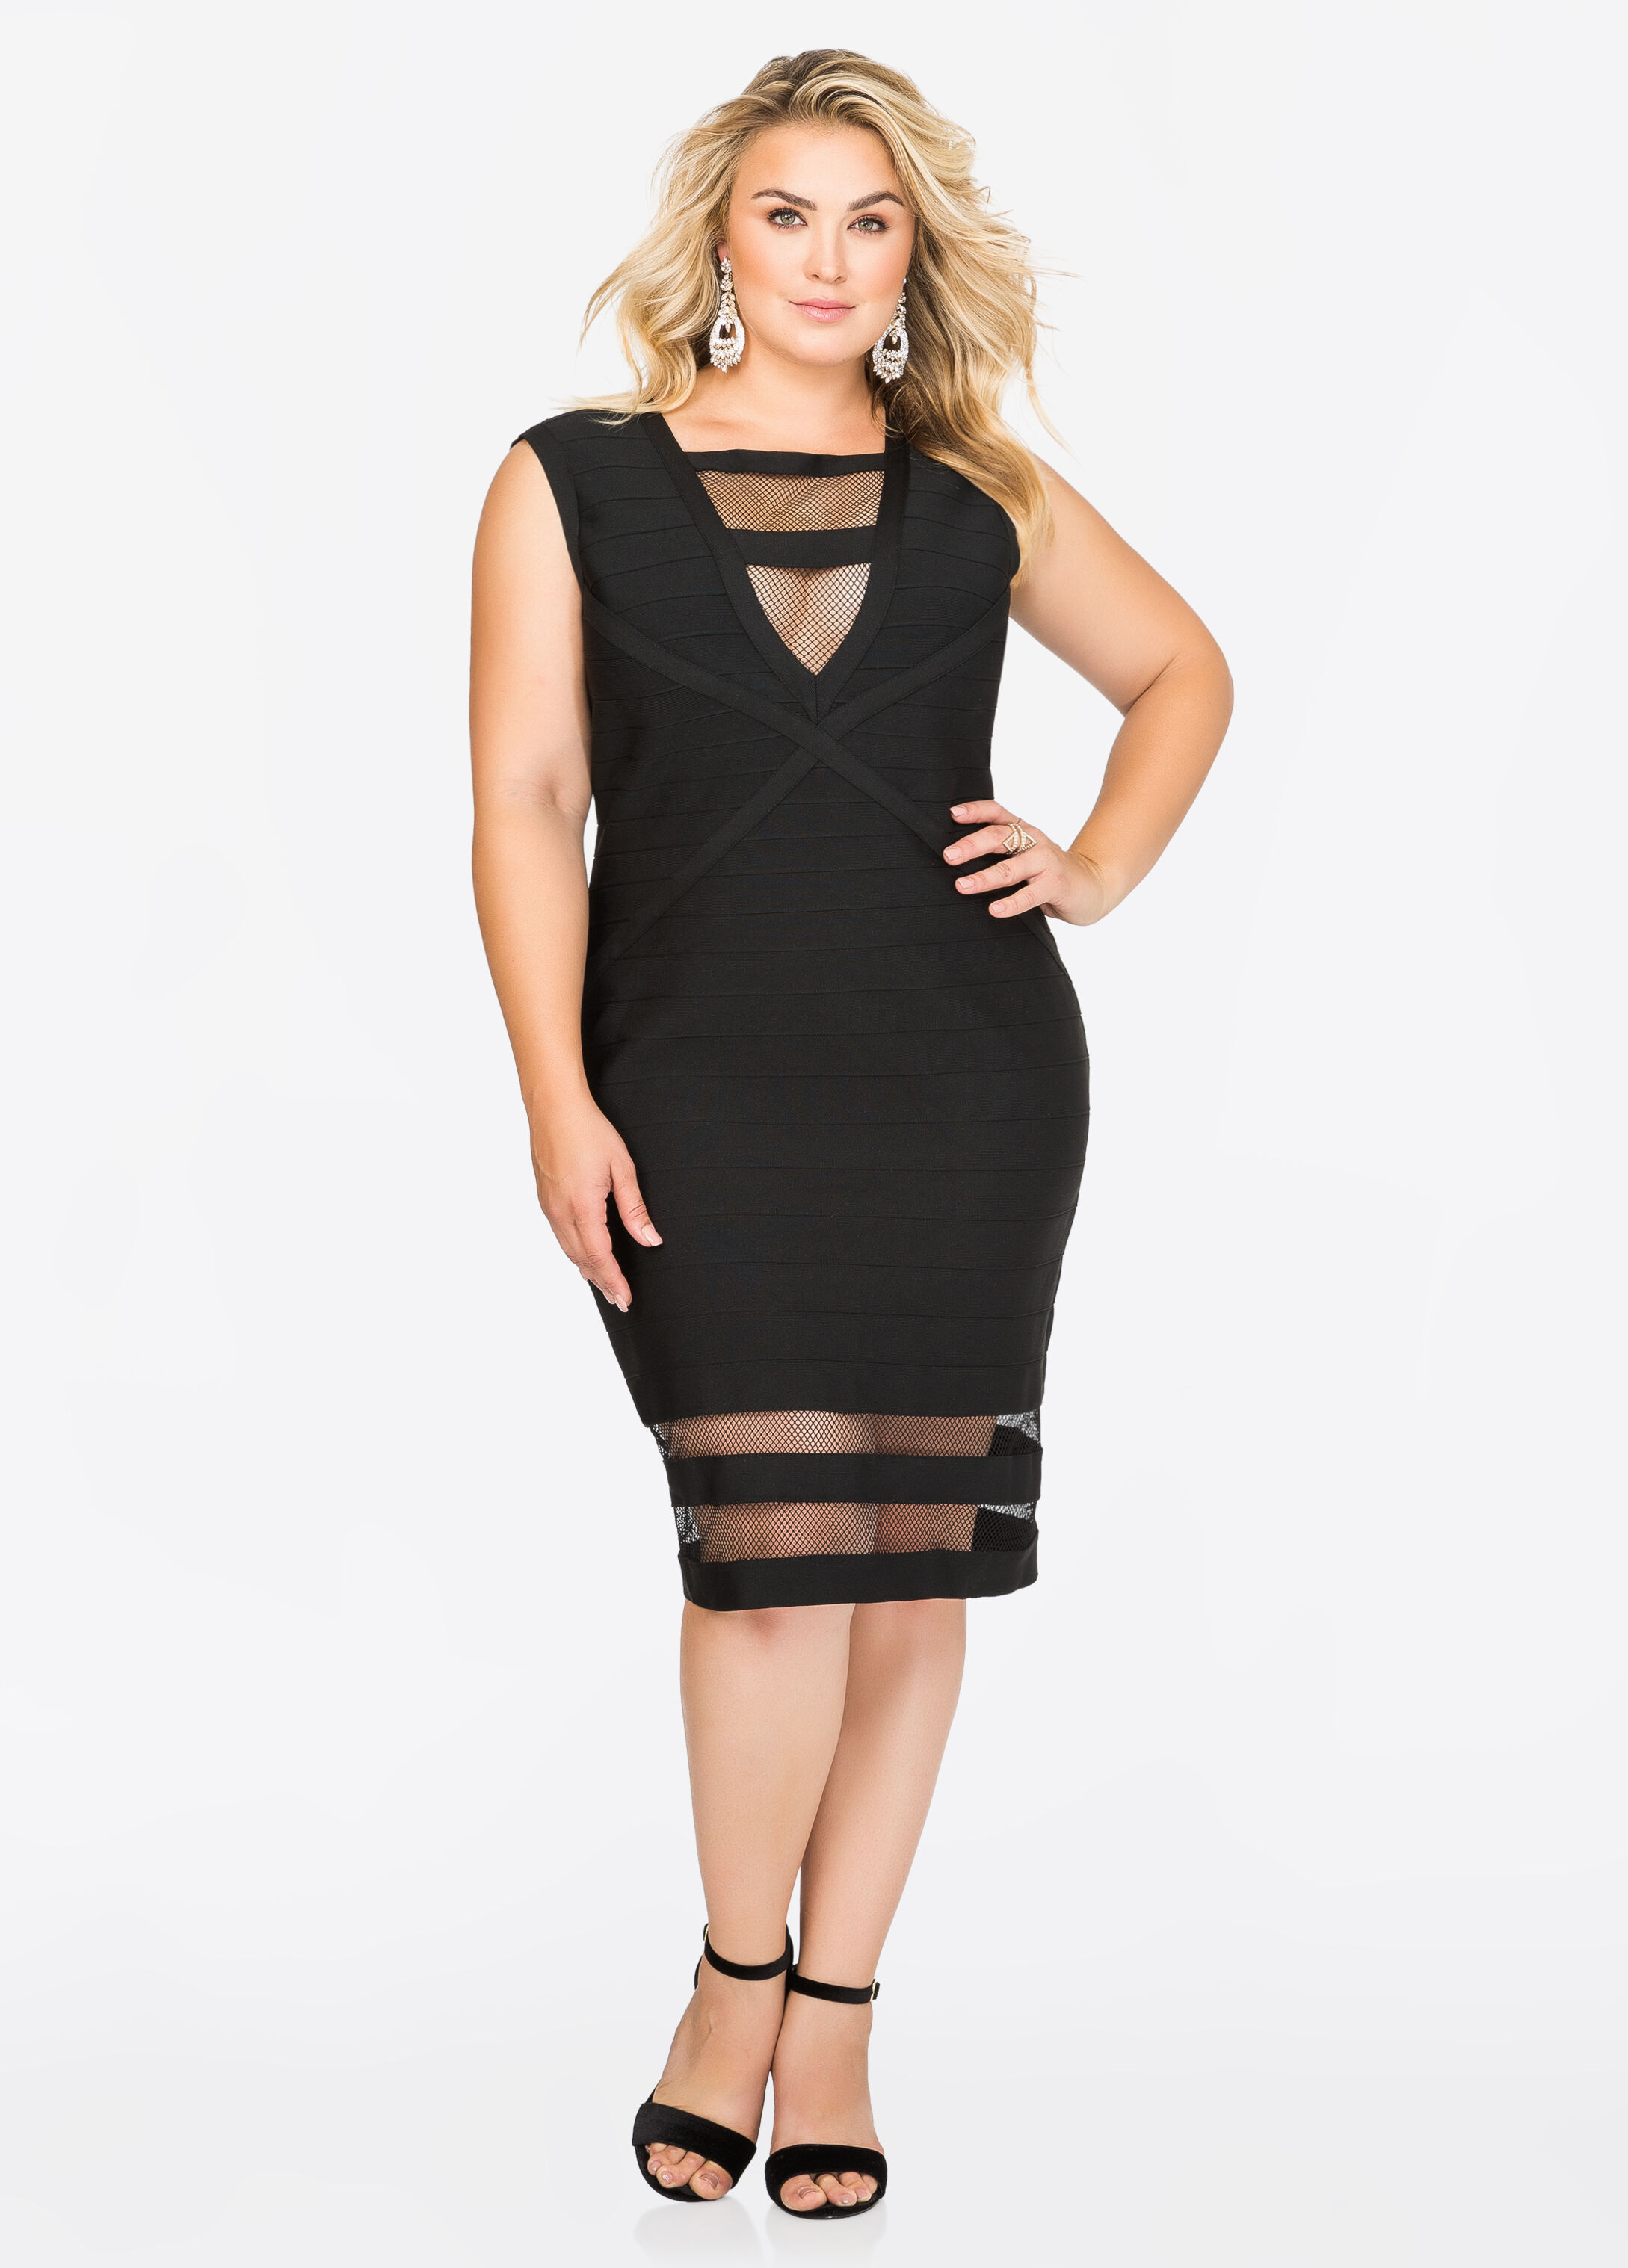 Summer dress clearance rate